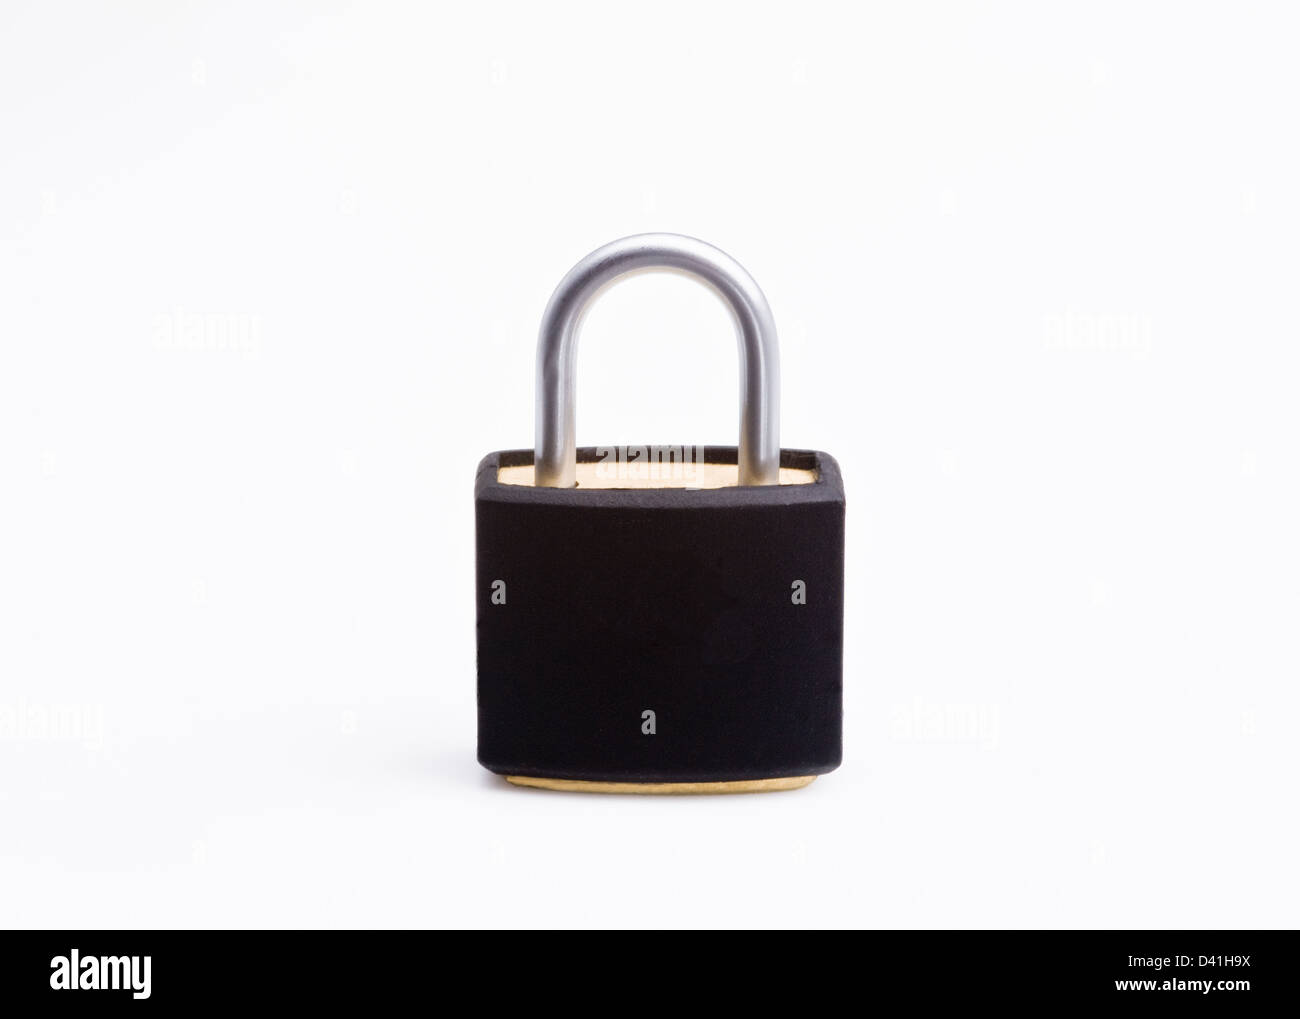 Closed padlock.locked fastened - Stock Image